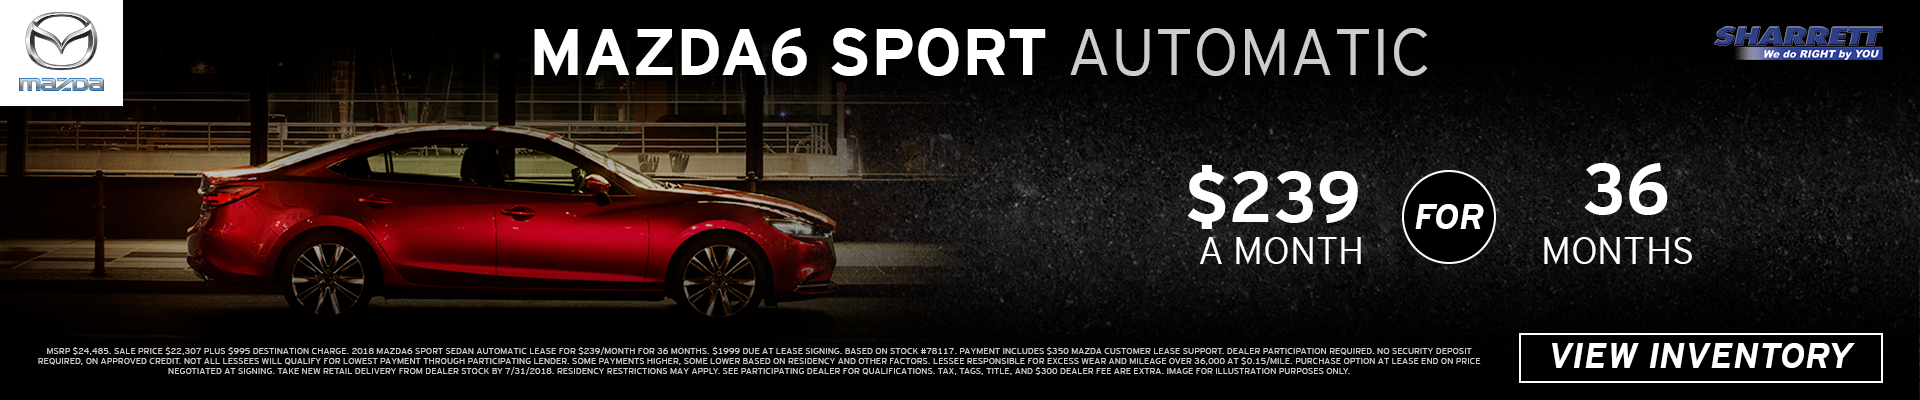 Lease a Mazda6 Sport for $239/mo for 36 months